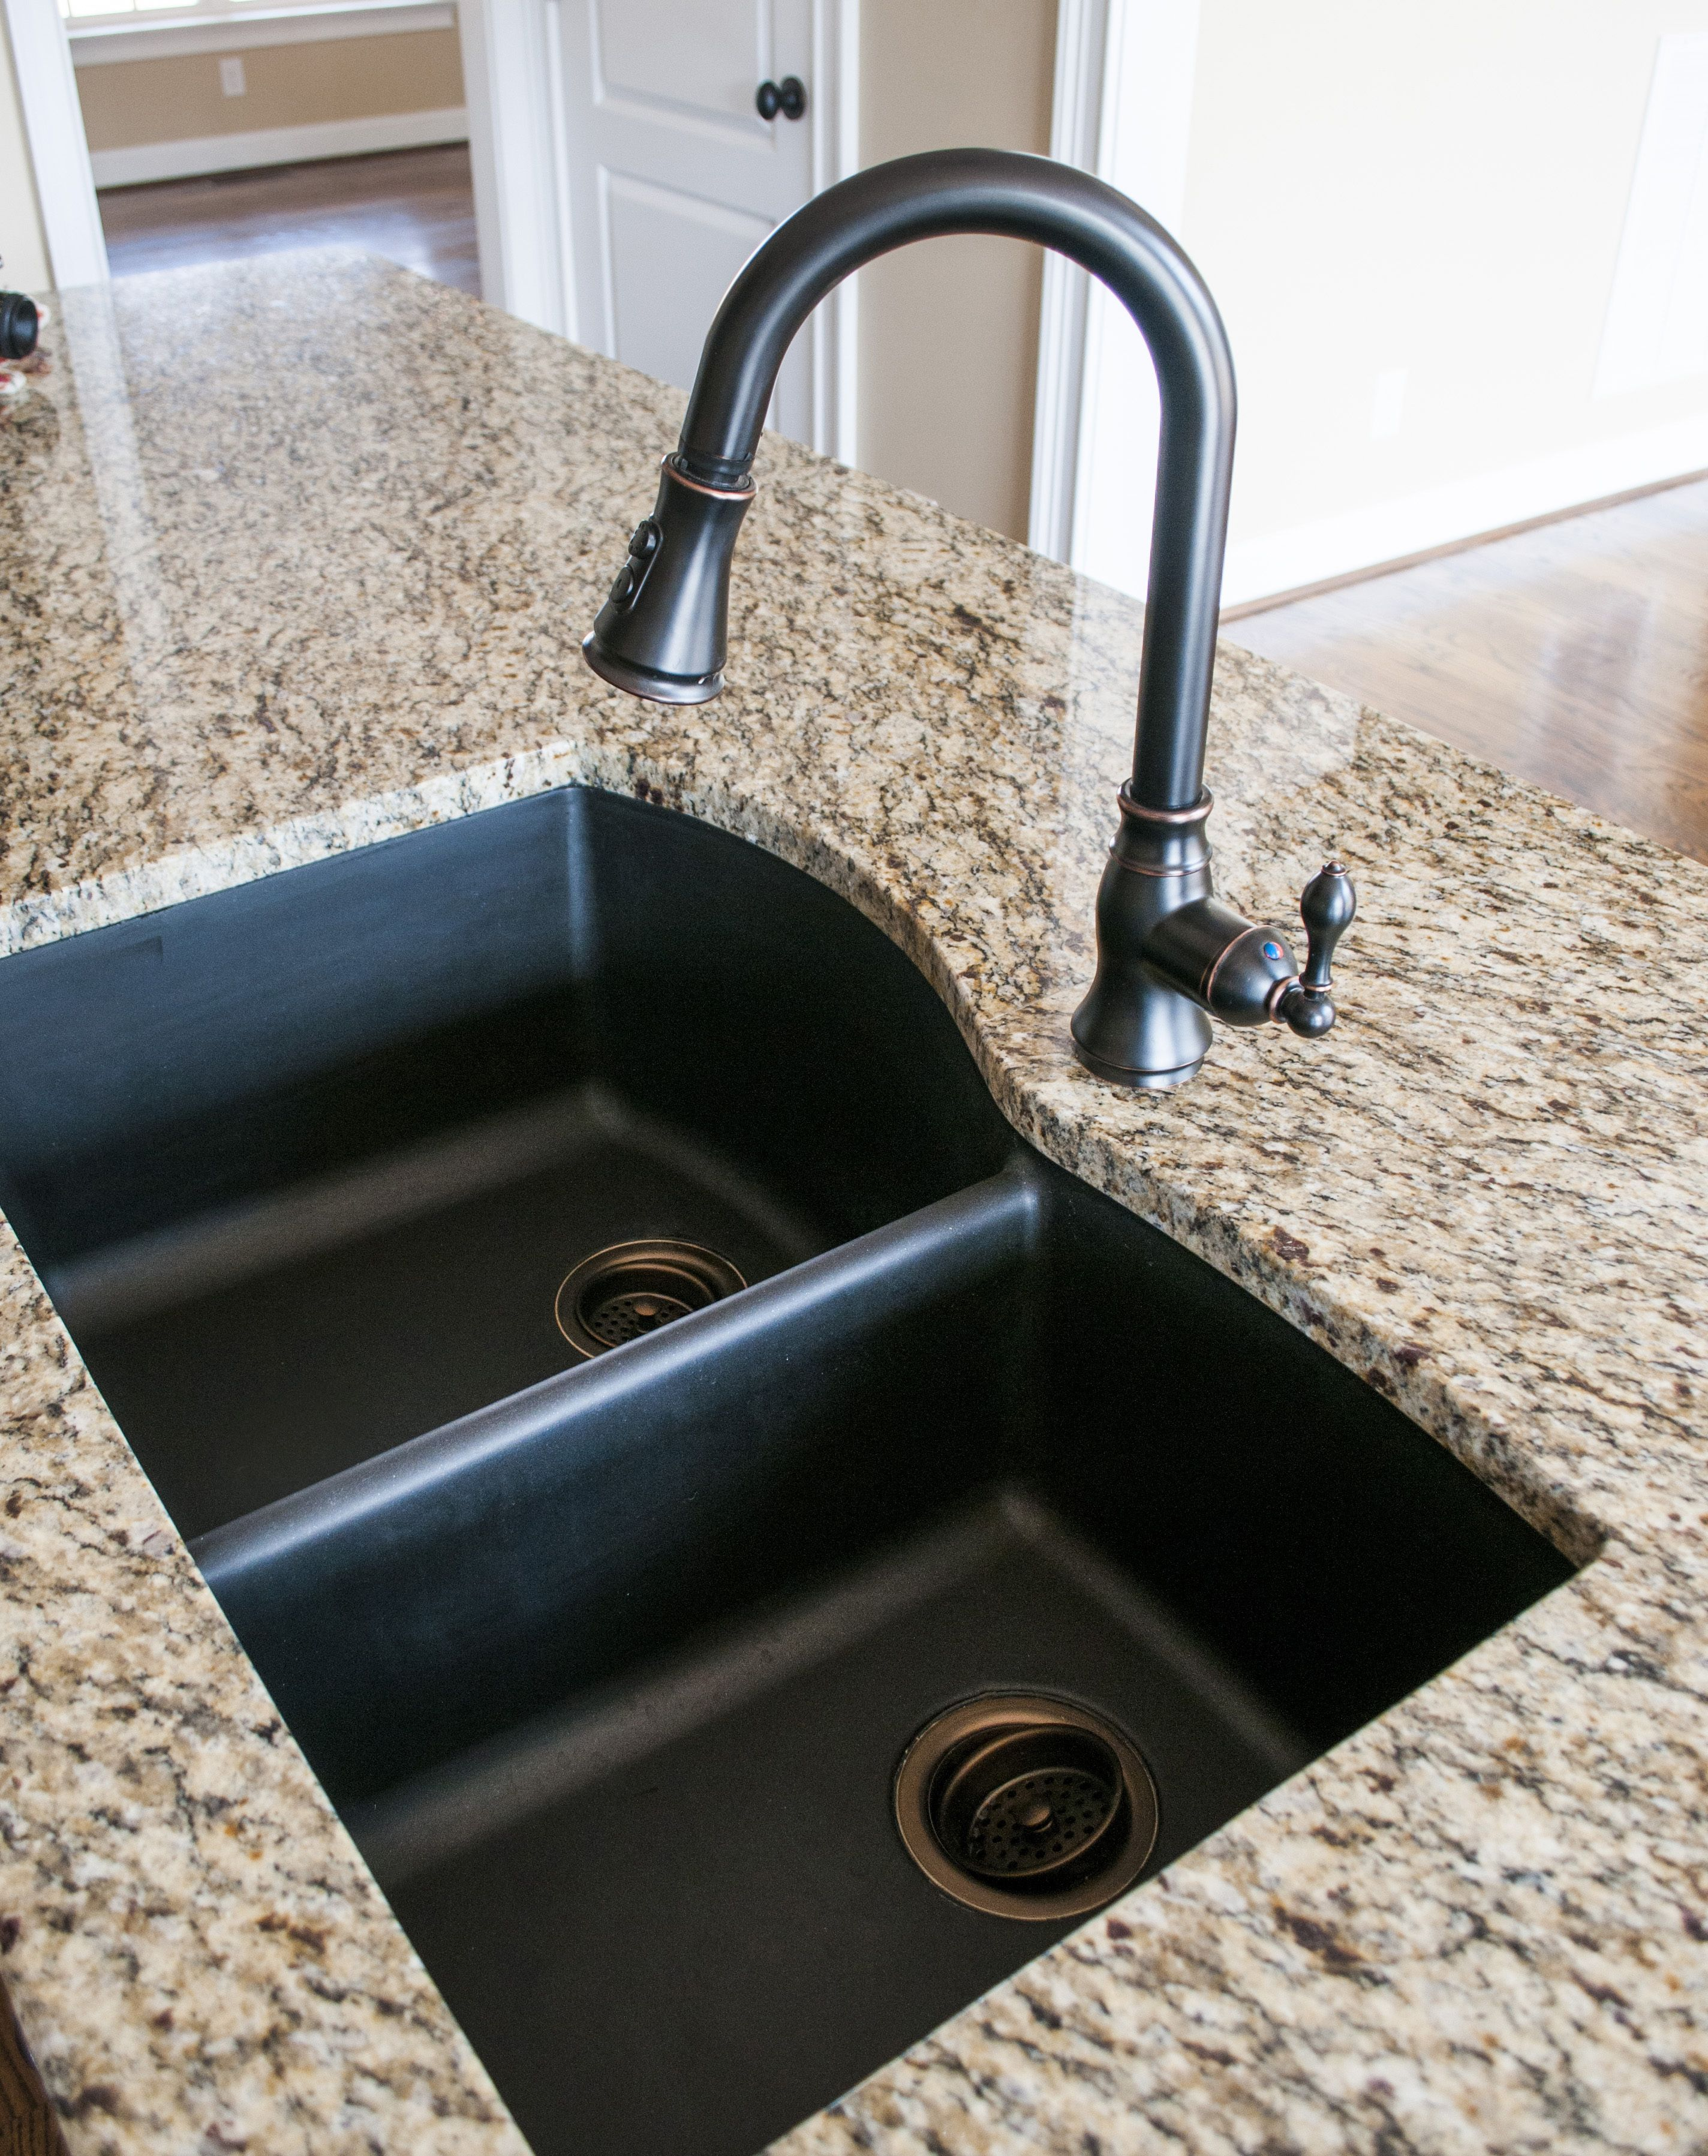 Black Kitchen Sink Stoves Granite Composite With Kohler Oil Rubbed Bronze Faucet And Drain So Dreamy